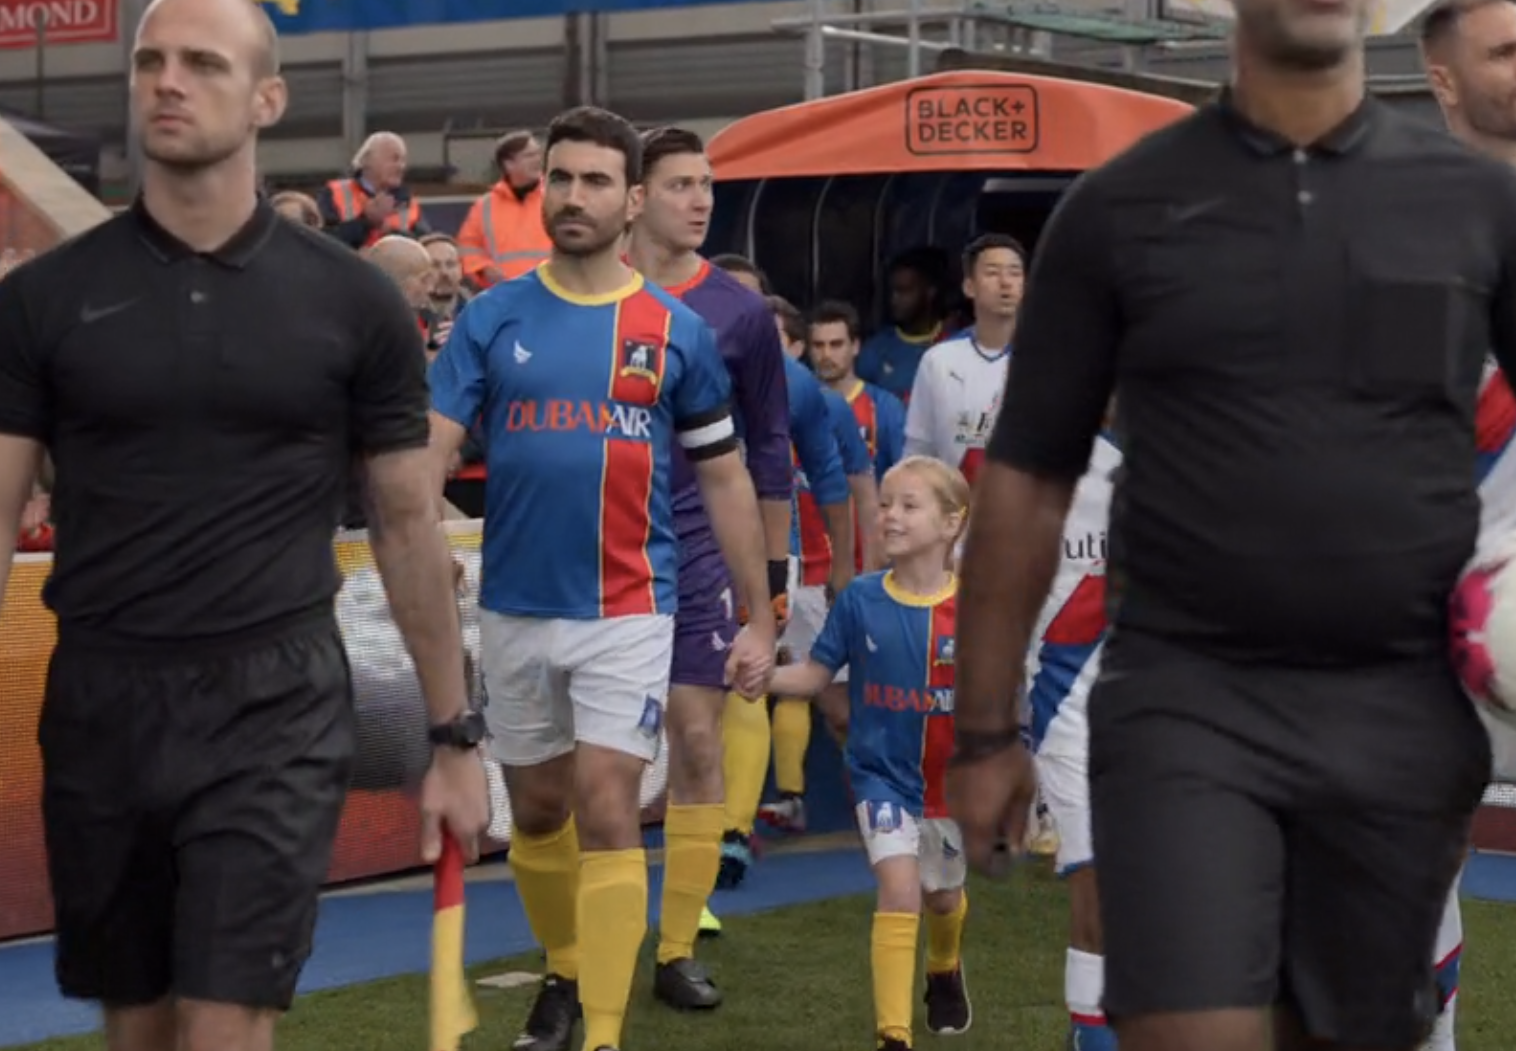 Roy and the rest of the team walk onto the field. Roy is hand in hand with his niece, Phoebe.